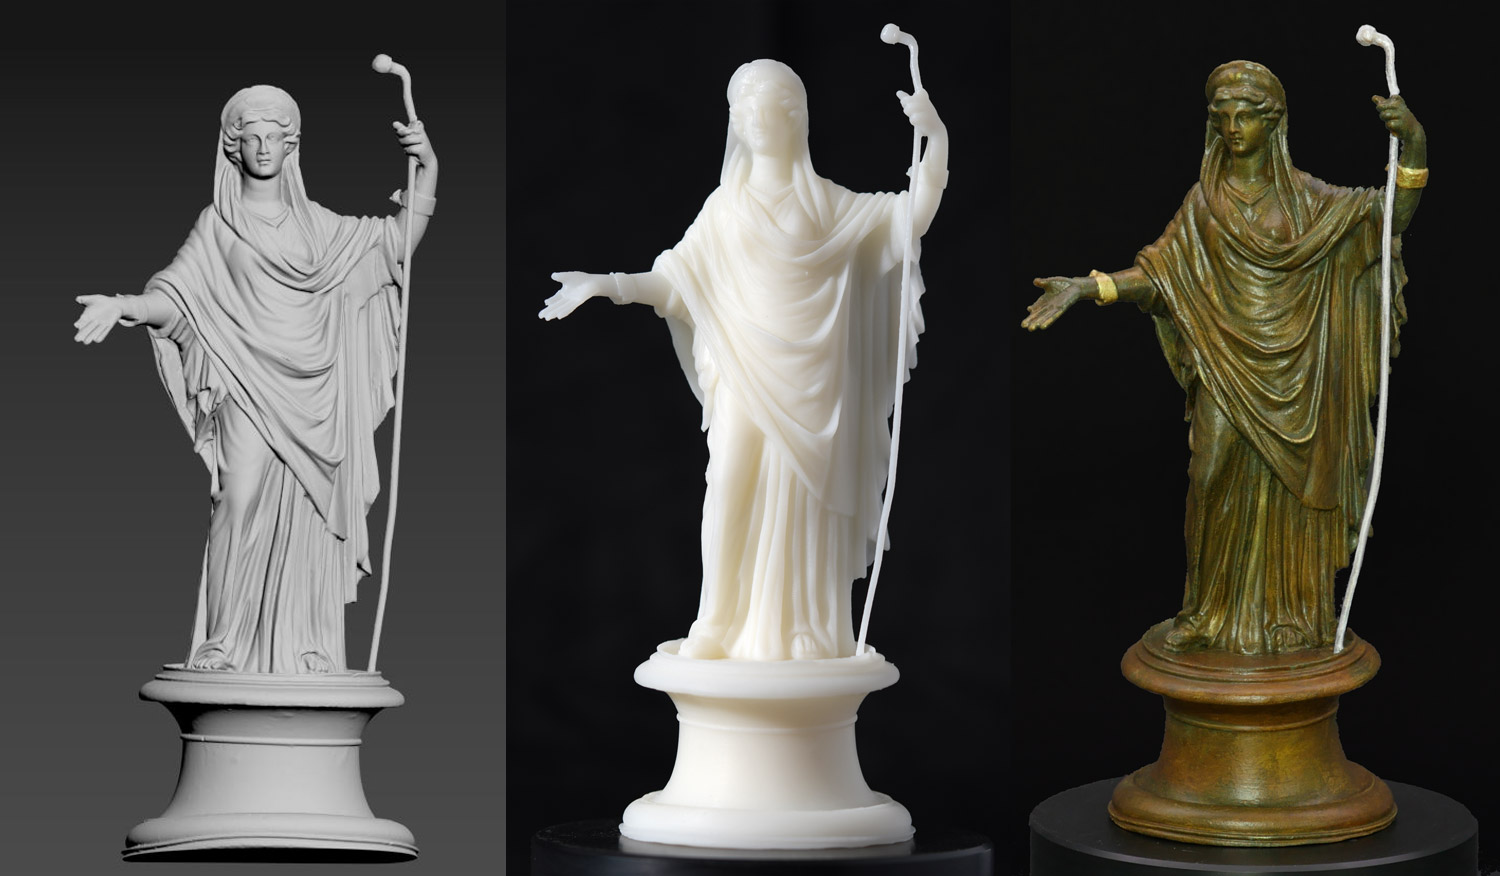 Capture object in 3D, process data (left), print in 3D (center), color in museum quality (right)